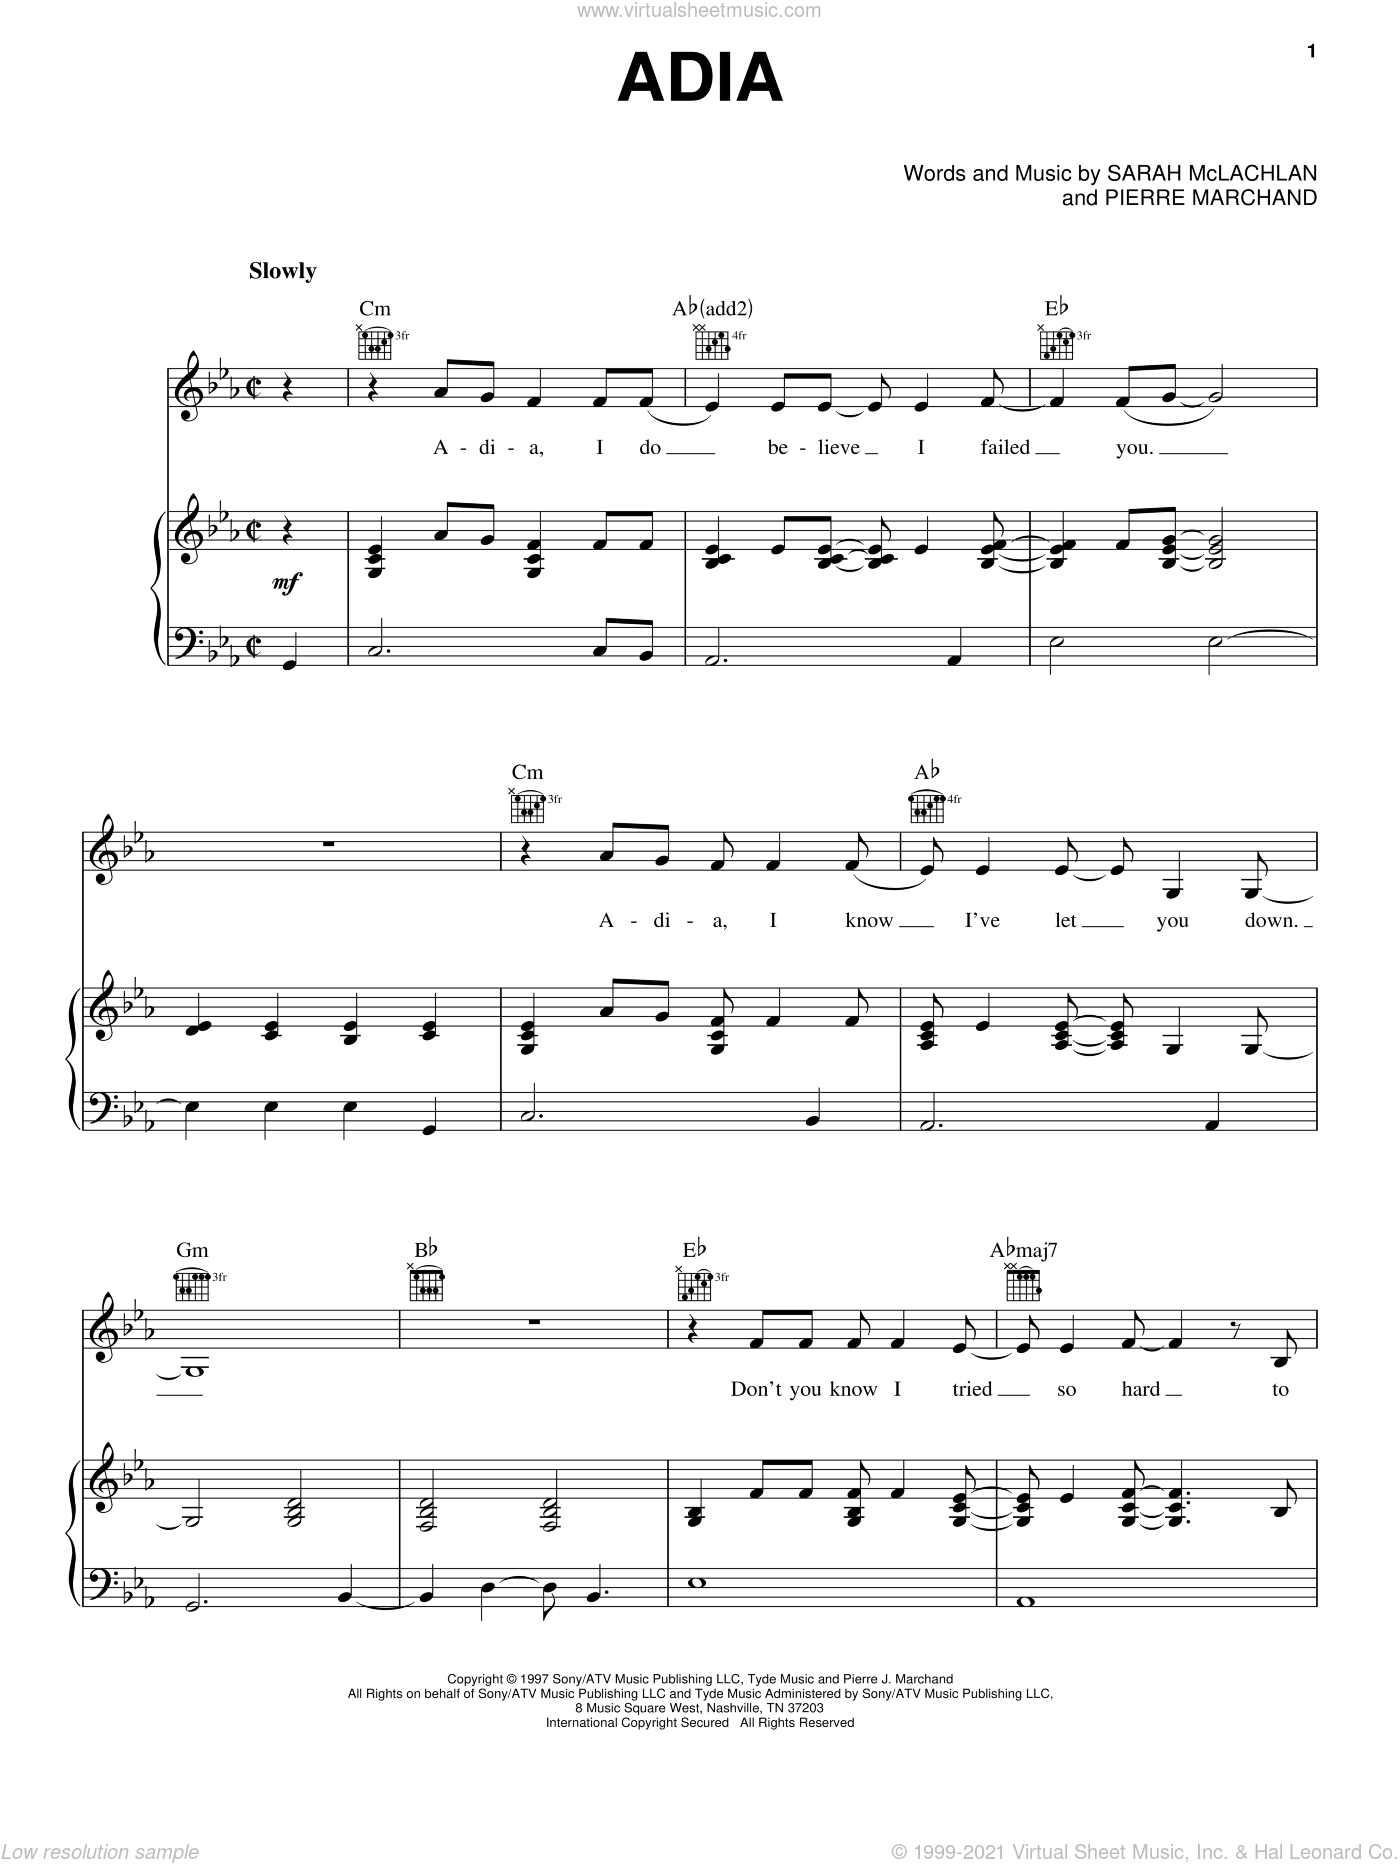 Adia sheet music for voice, piano or guitar by Pierre Marchand and Sarah McLachlan. Score Image Preview.